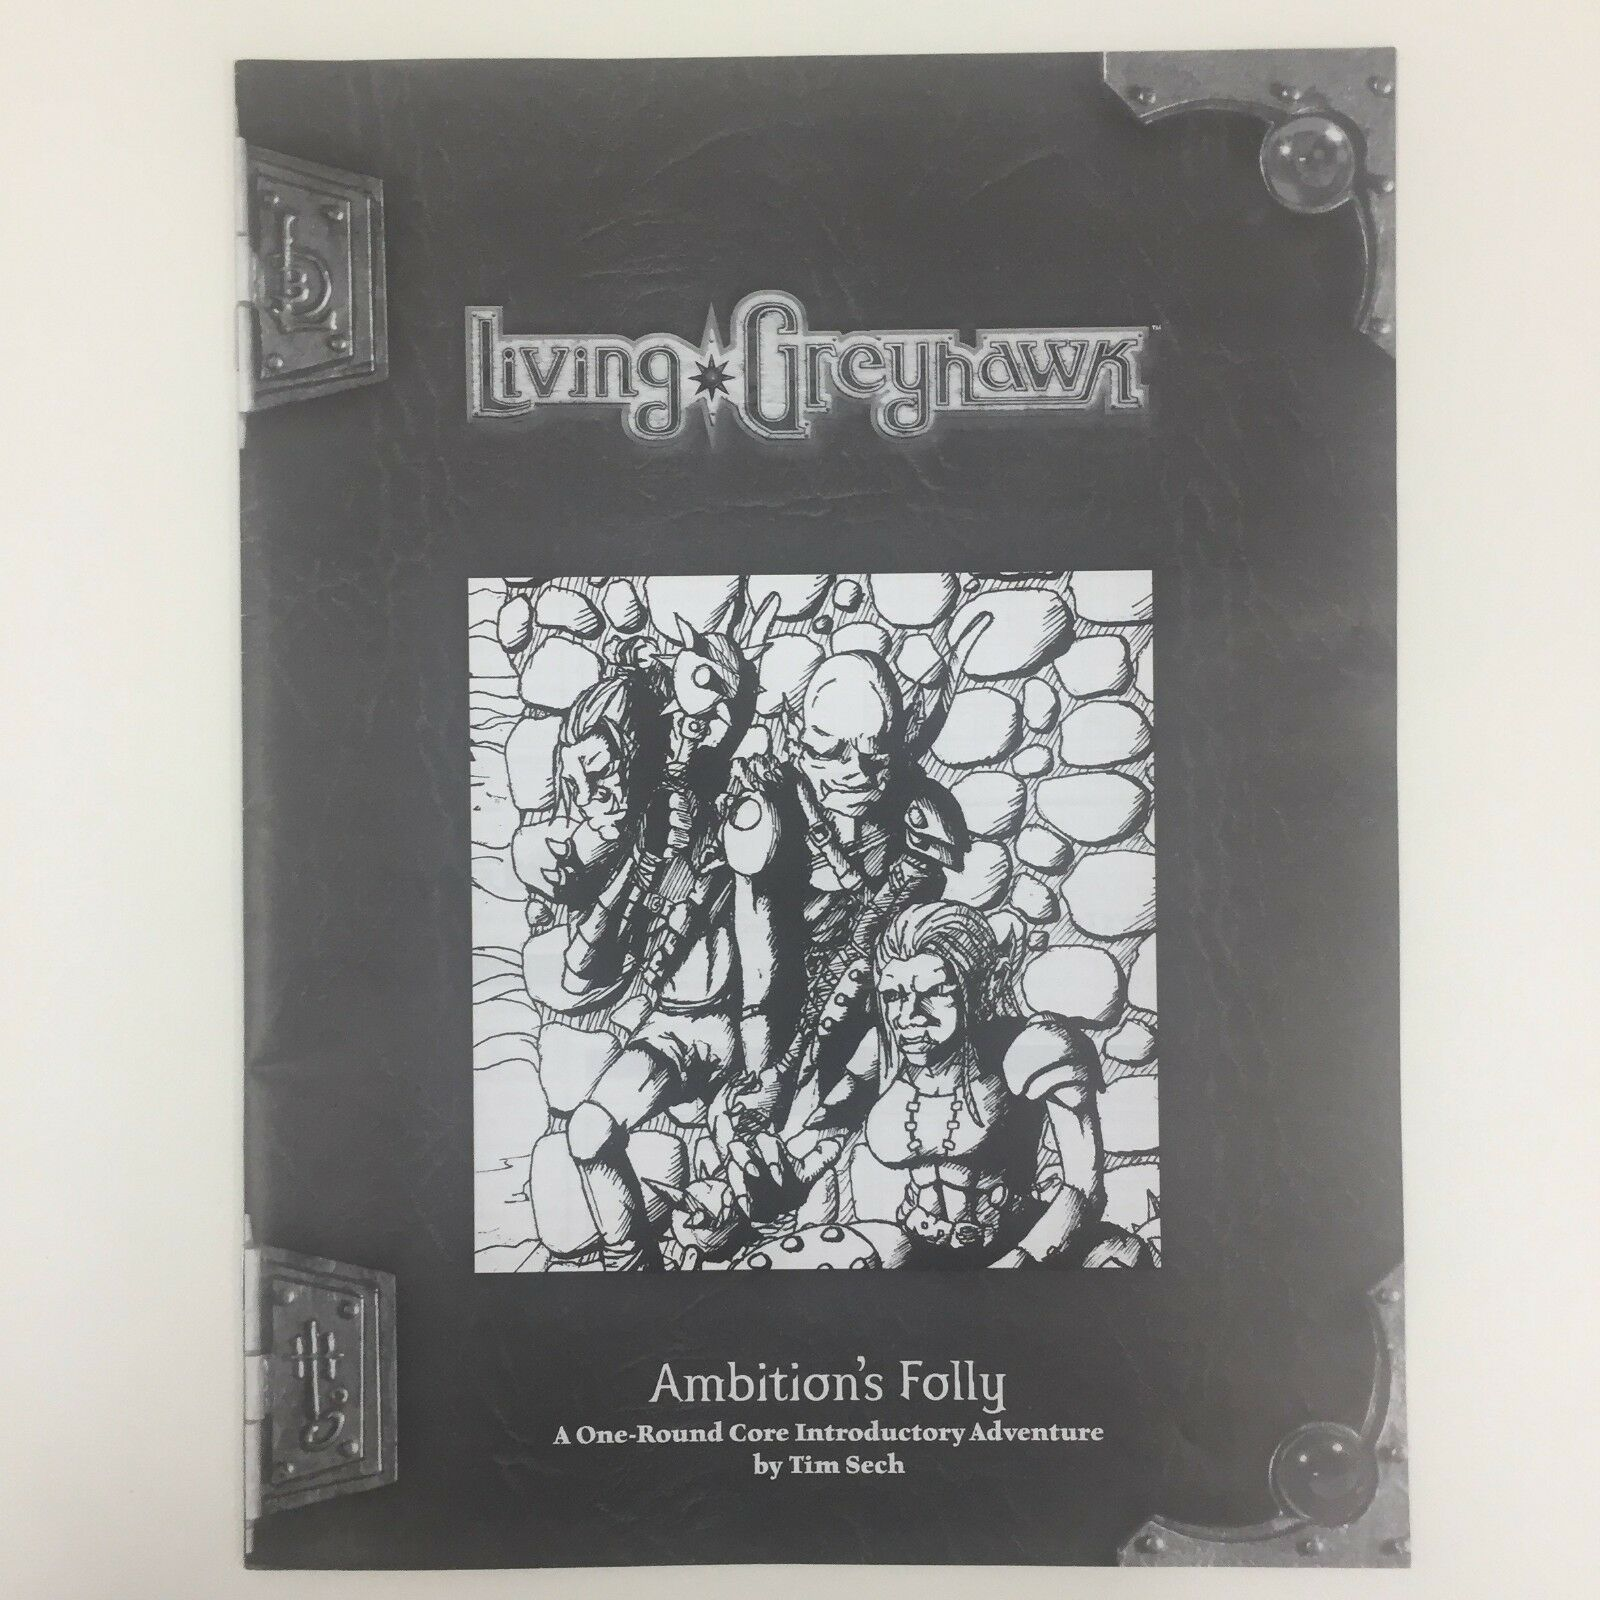 TSR Calabozos y Dragones D&d Rpg Living Greyhawk AMBITION'S Folly Intro Aventura